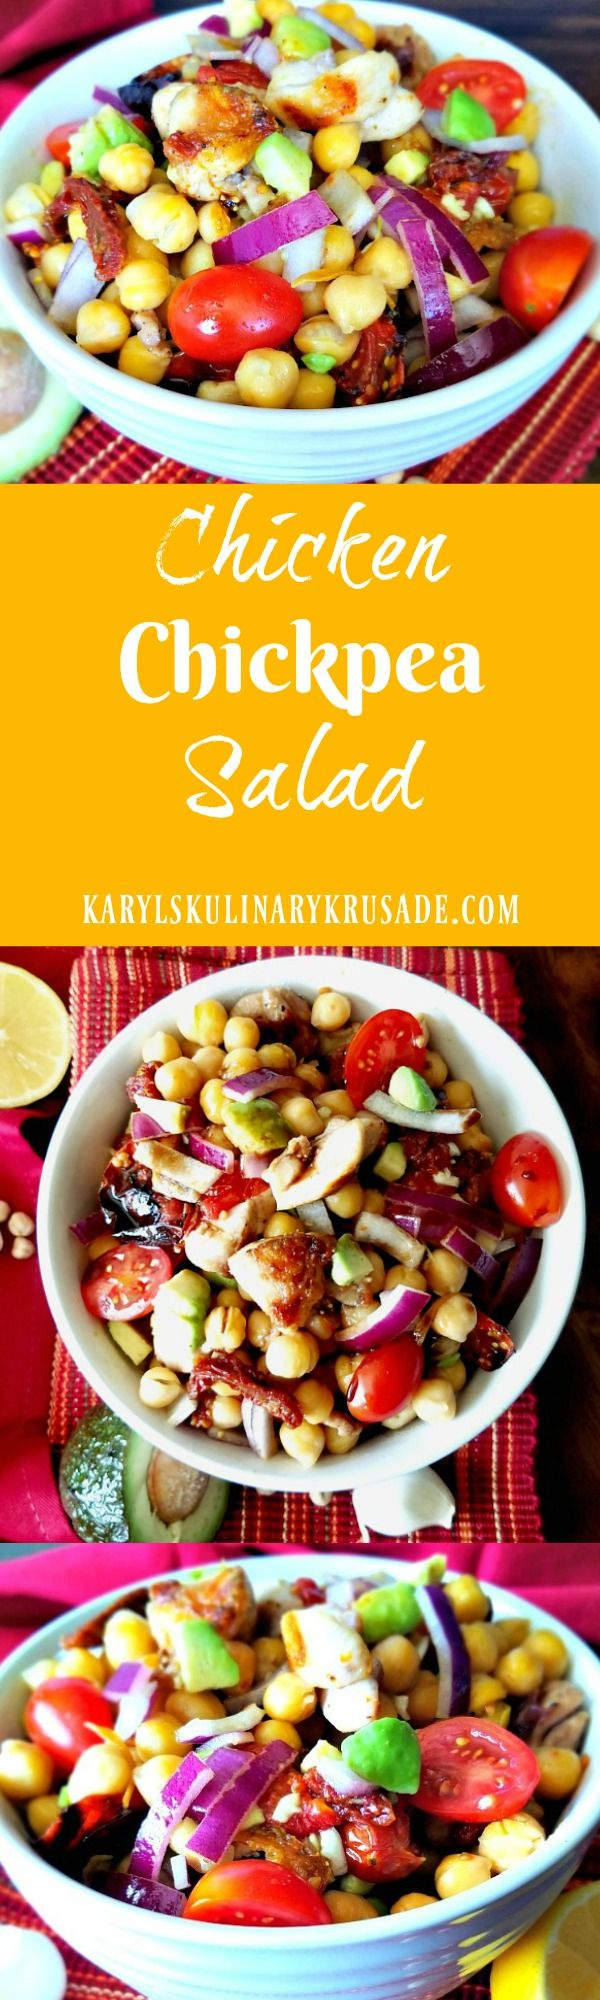 Chicken and chickpeas come together to make a delicious salad. A trio of tomatoes (roasted, raw, and sundried) add wonderful flavor. A rich, thick balsamic vinegar is the finishing touch that will keep you coming back for more.